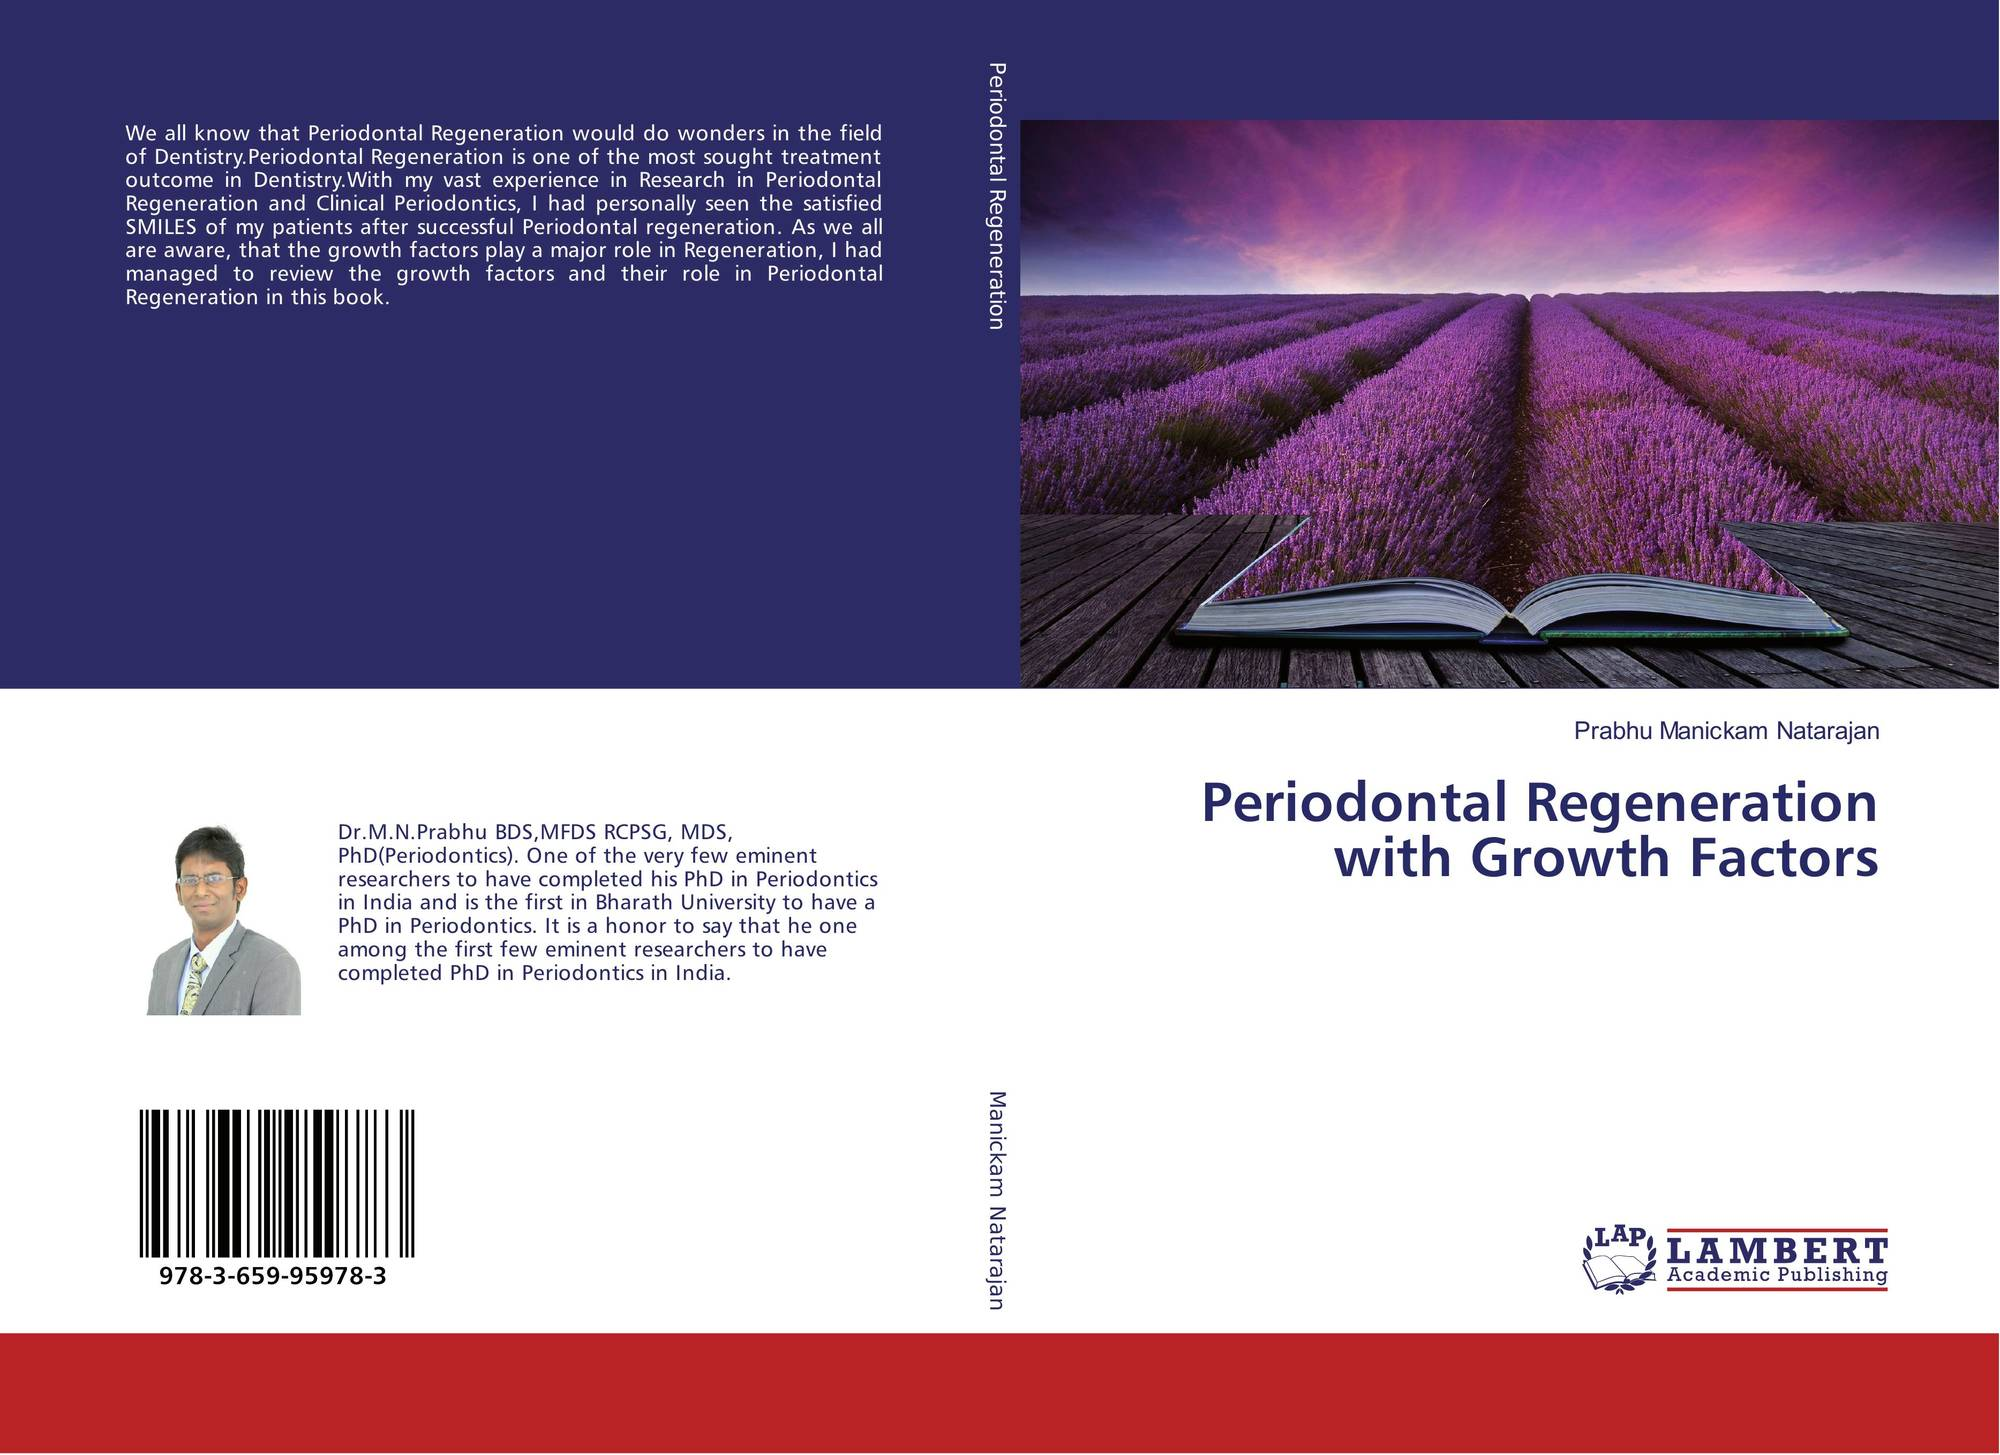 growth factors in periodontal regeneration Combination growth factor therapy which involved pdgf and igf1 has consistently promoted the periodontal regeneration (greater osseous and new attachment response) in both dogs and nonhuman primate models (giannobile et al and rutherford et al).